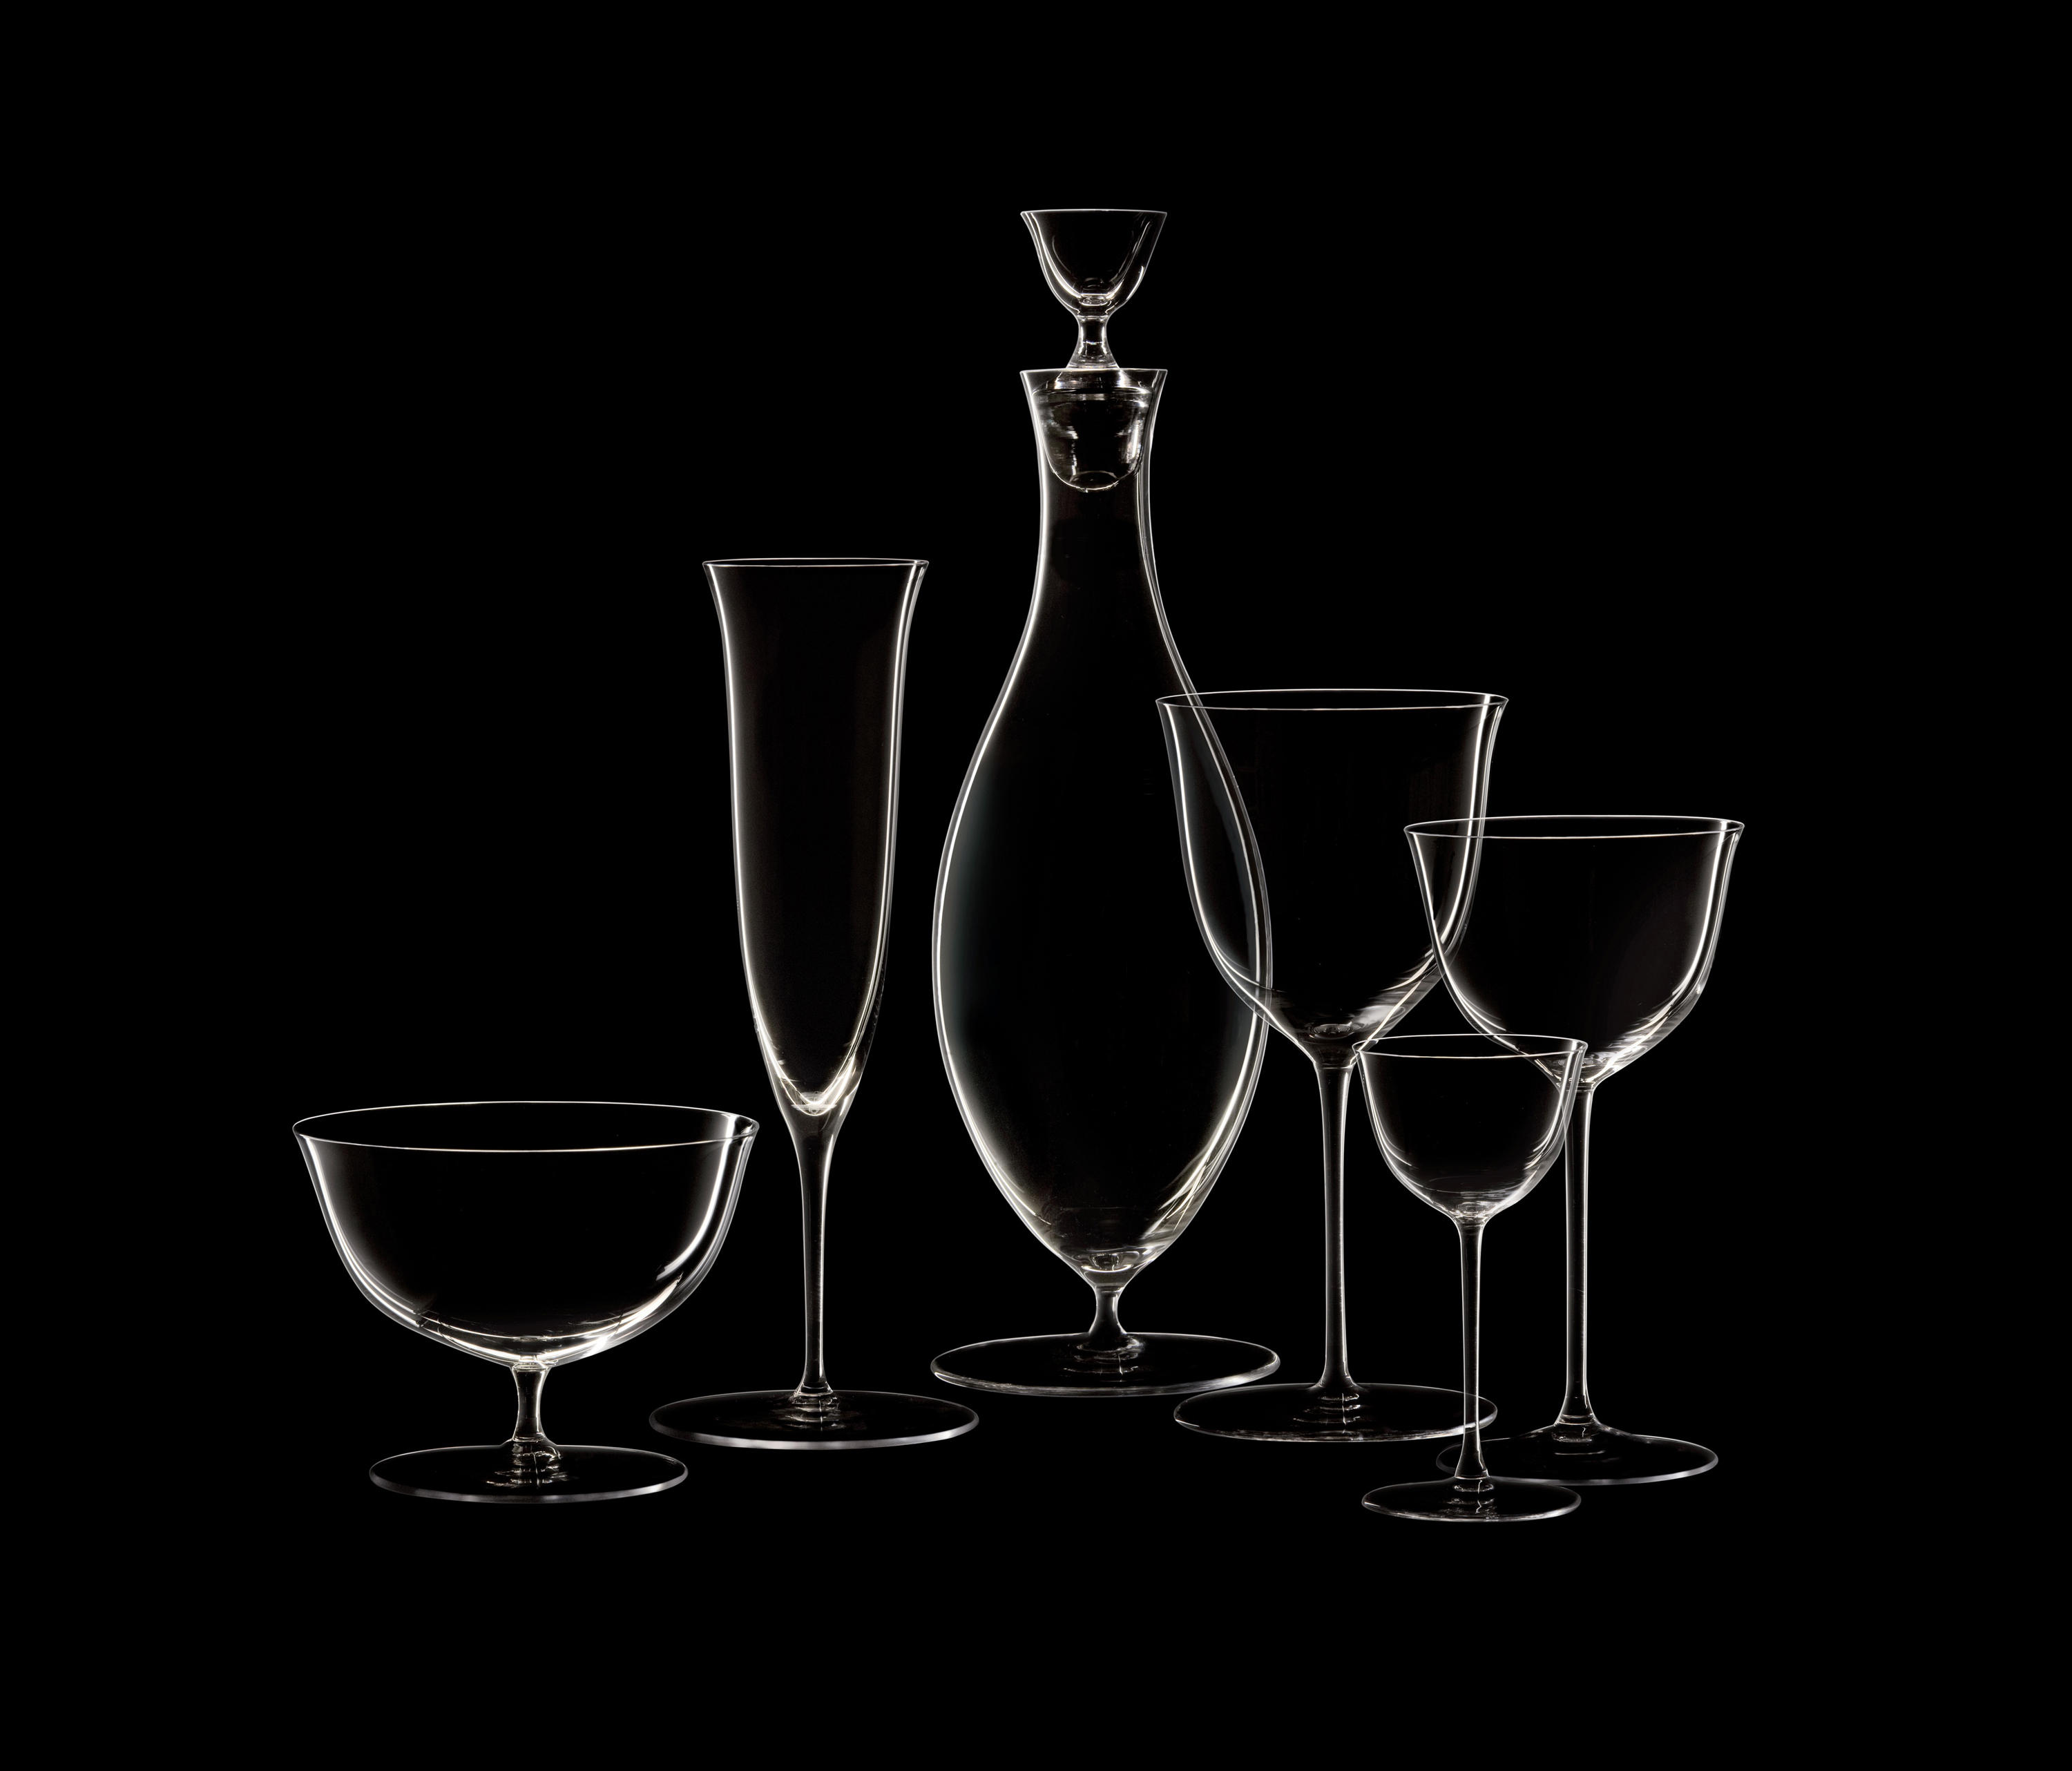 Drinking Set No.238 Finger Bowl On Stem - Set of 6 - The perfectly flowing contours of these original Hoffmann shapes make this muslin glass service a classic. Josef Hoffmann designed the elegantly balanced glasses for Lobmeyr as early as 1917. The material, extremely delicate muslin glass, hand-blown in wooden shapes, gives the series its elegance.    | Matter of Stuff